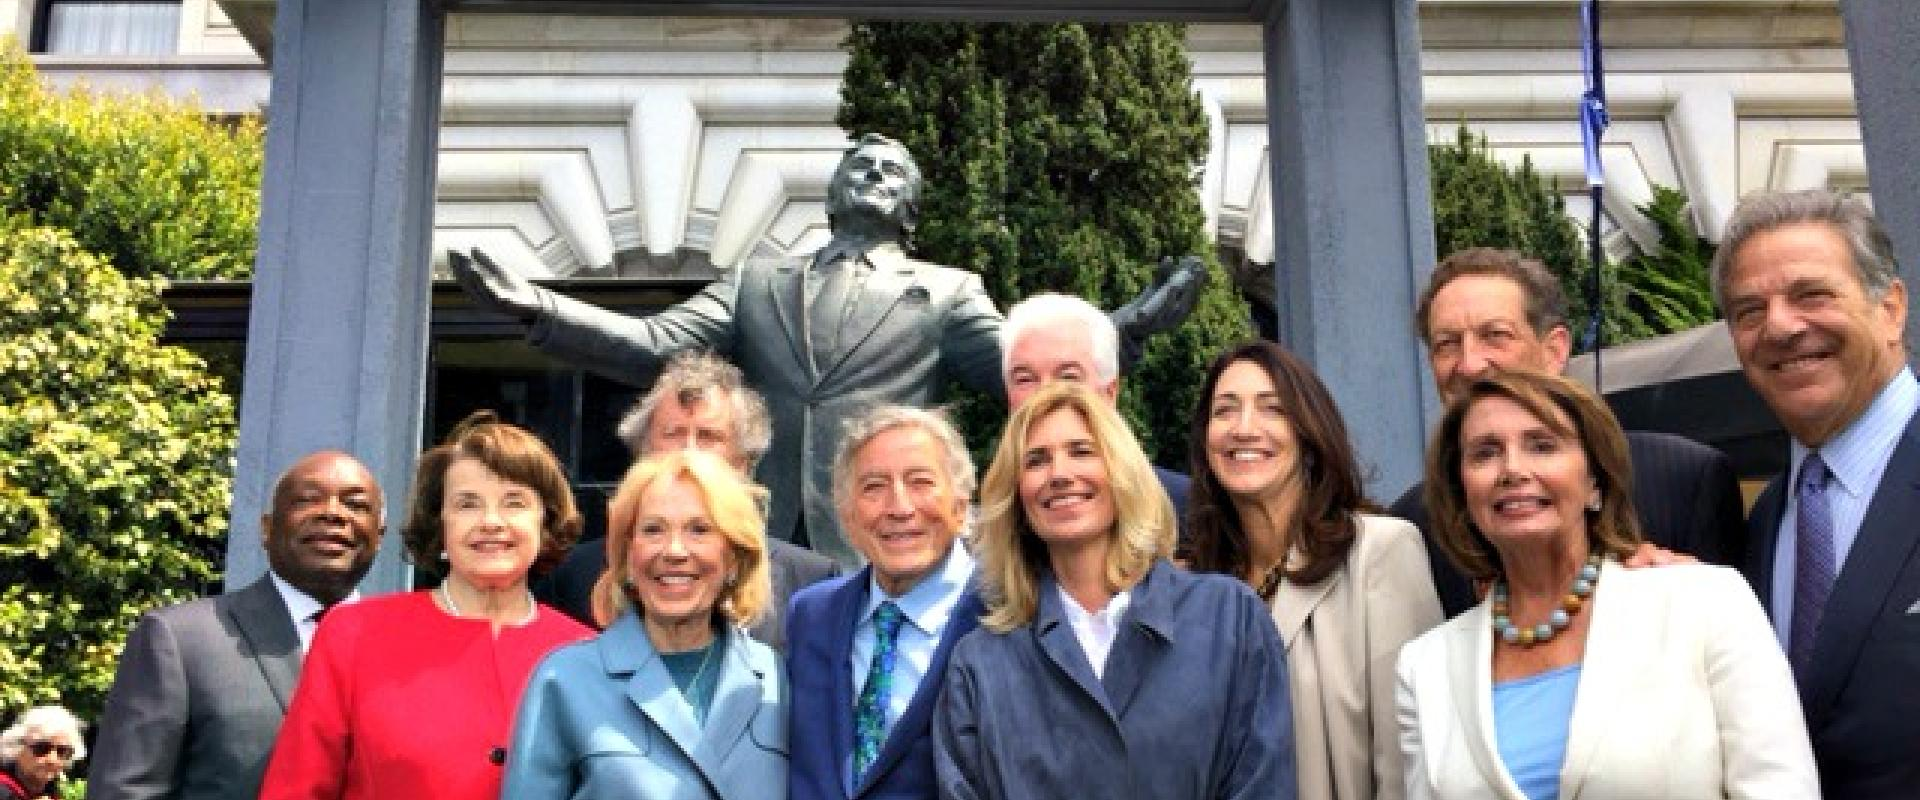 Congresswoman Pelosi along with Senator Feinstein and civic leaders join legendary entertainer Tony Bennett on his 90th birthday at the dedication of a statue commemorating Bennett's contributions to San Francisco outside the Fairmont Hotel.